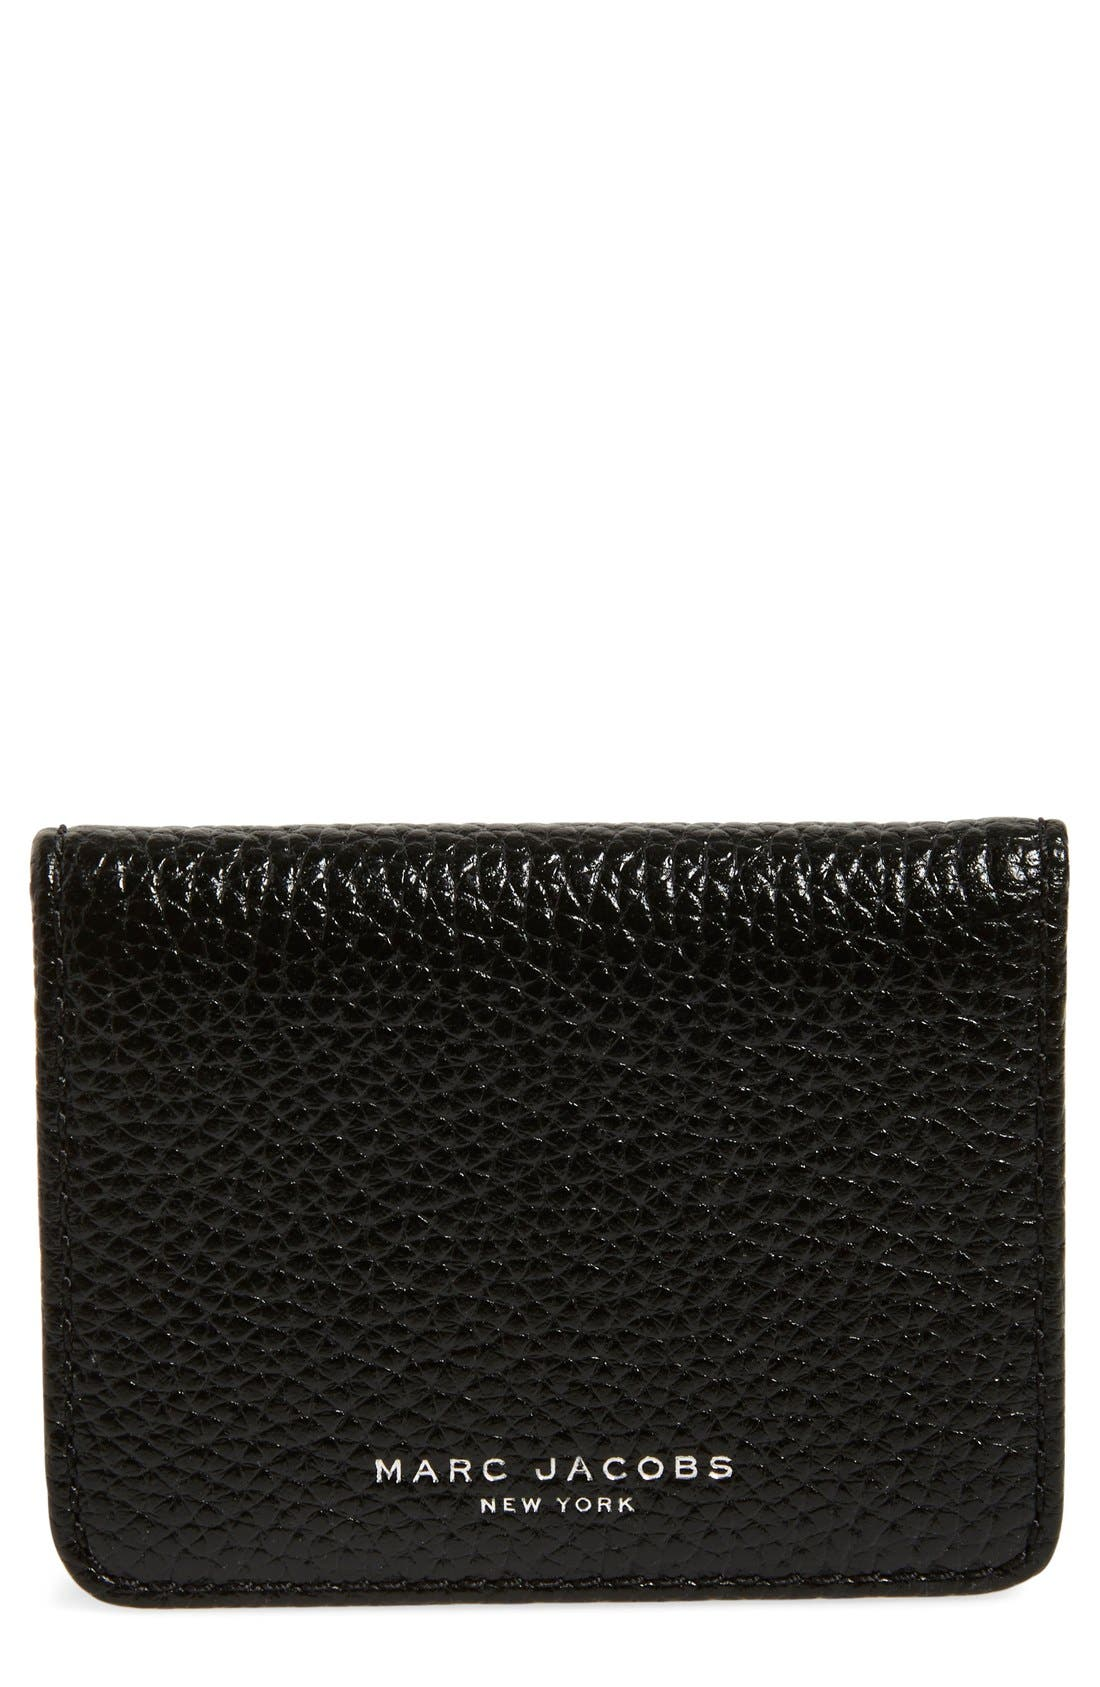 MARC JACOBS 'Gotham' Leather Card Case